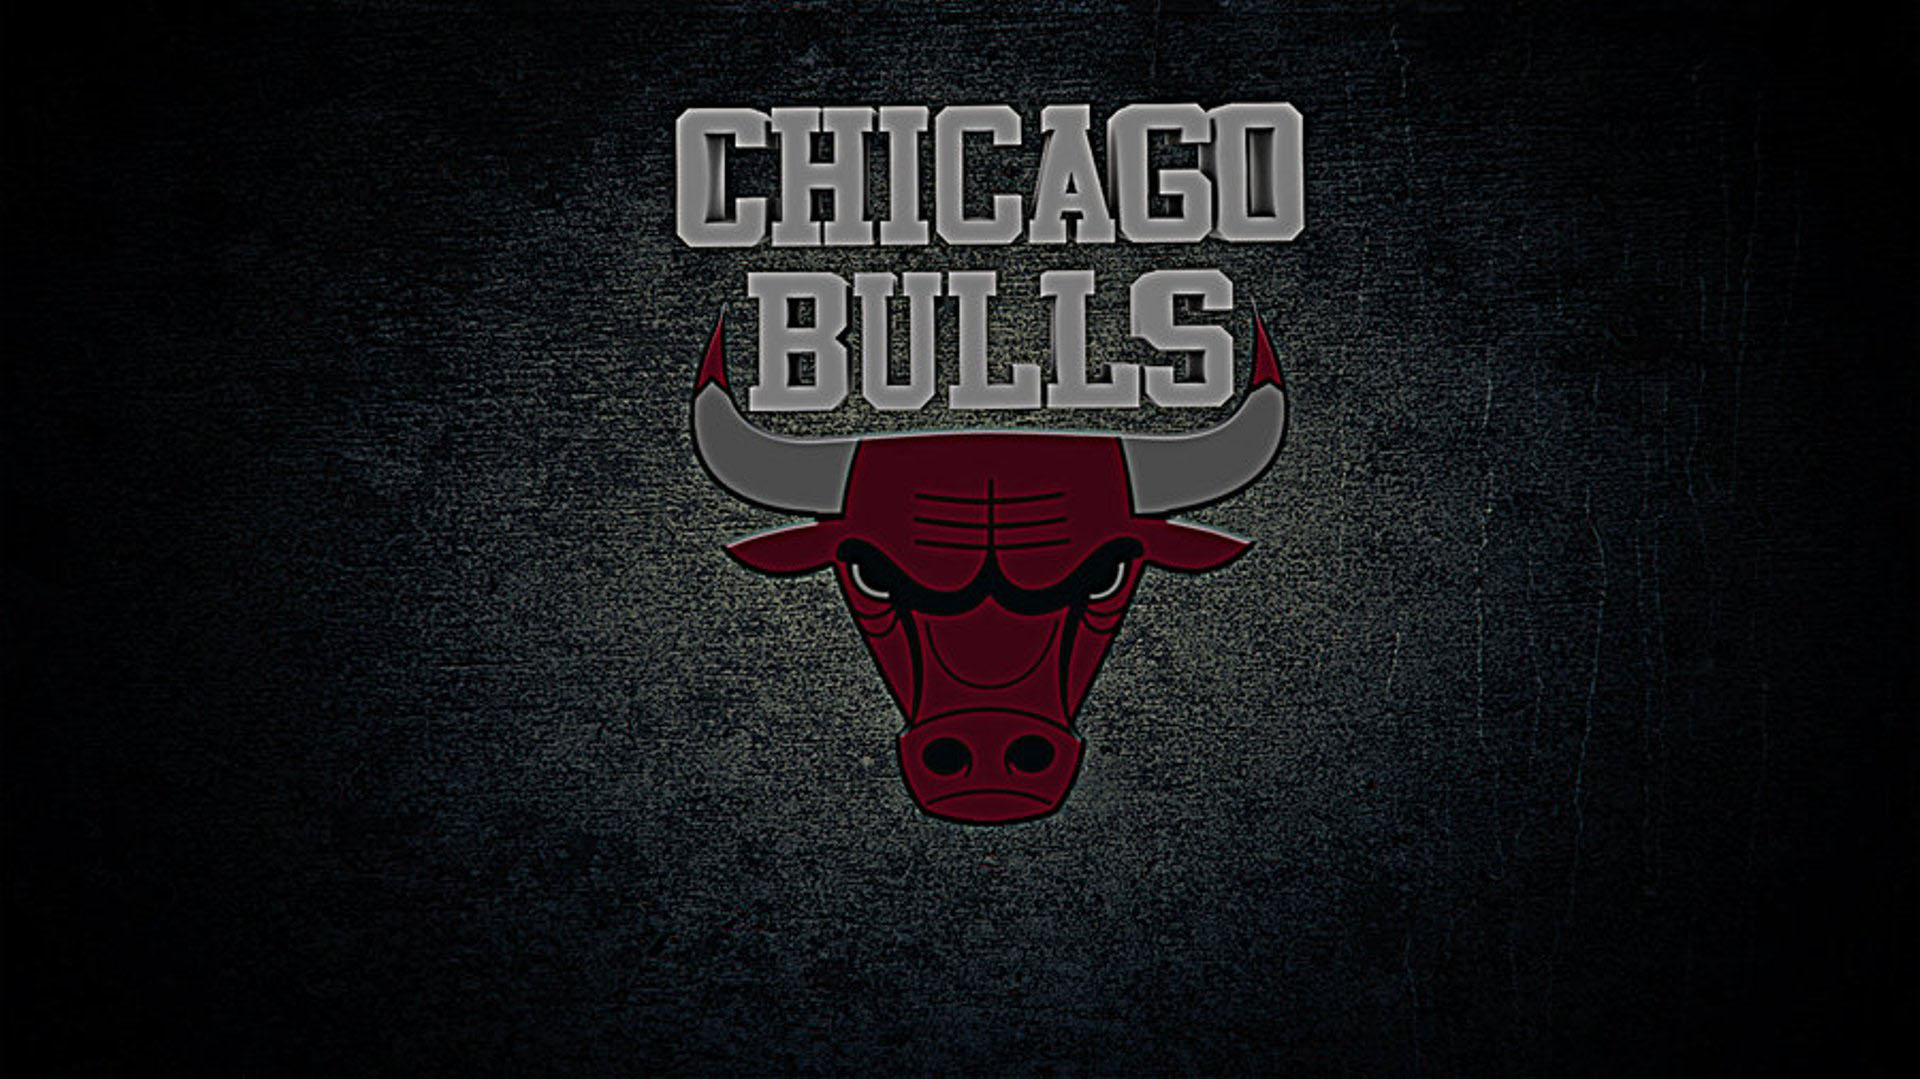 Chicago Bulls Wallpaper Full HD